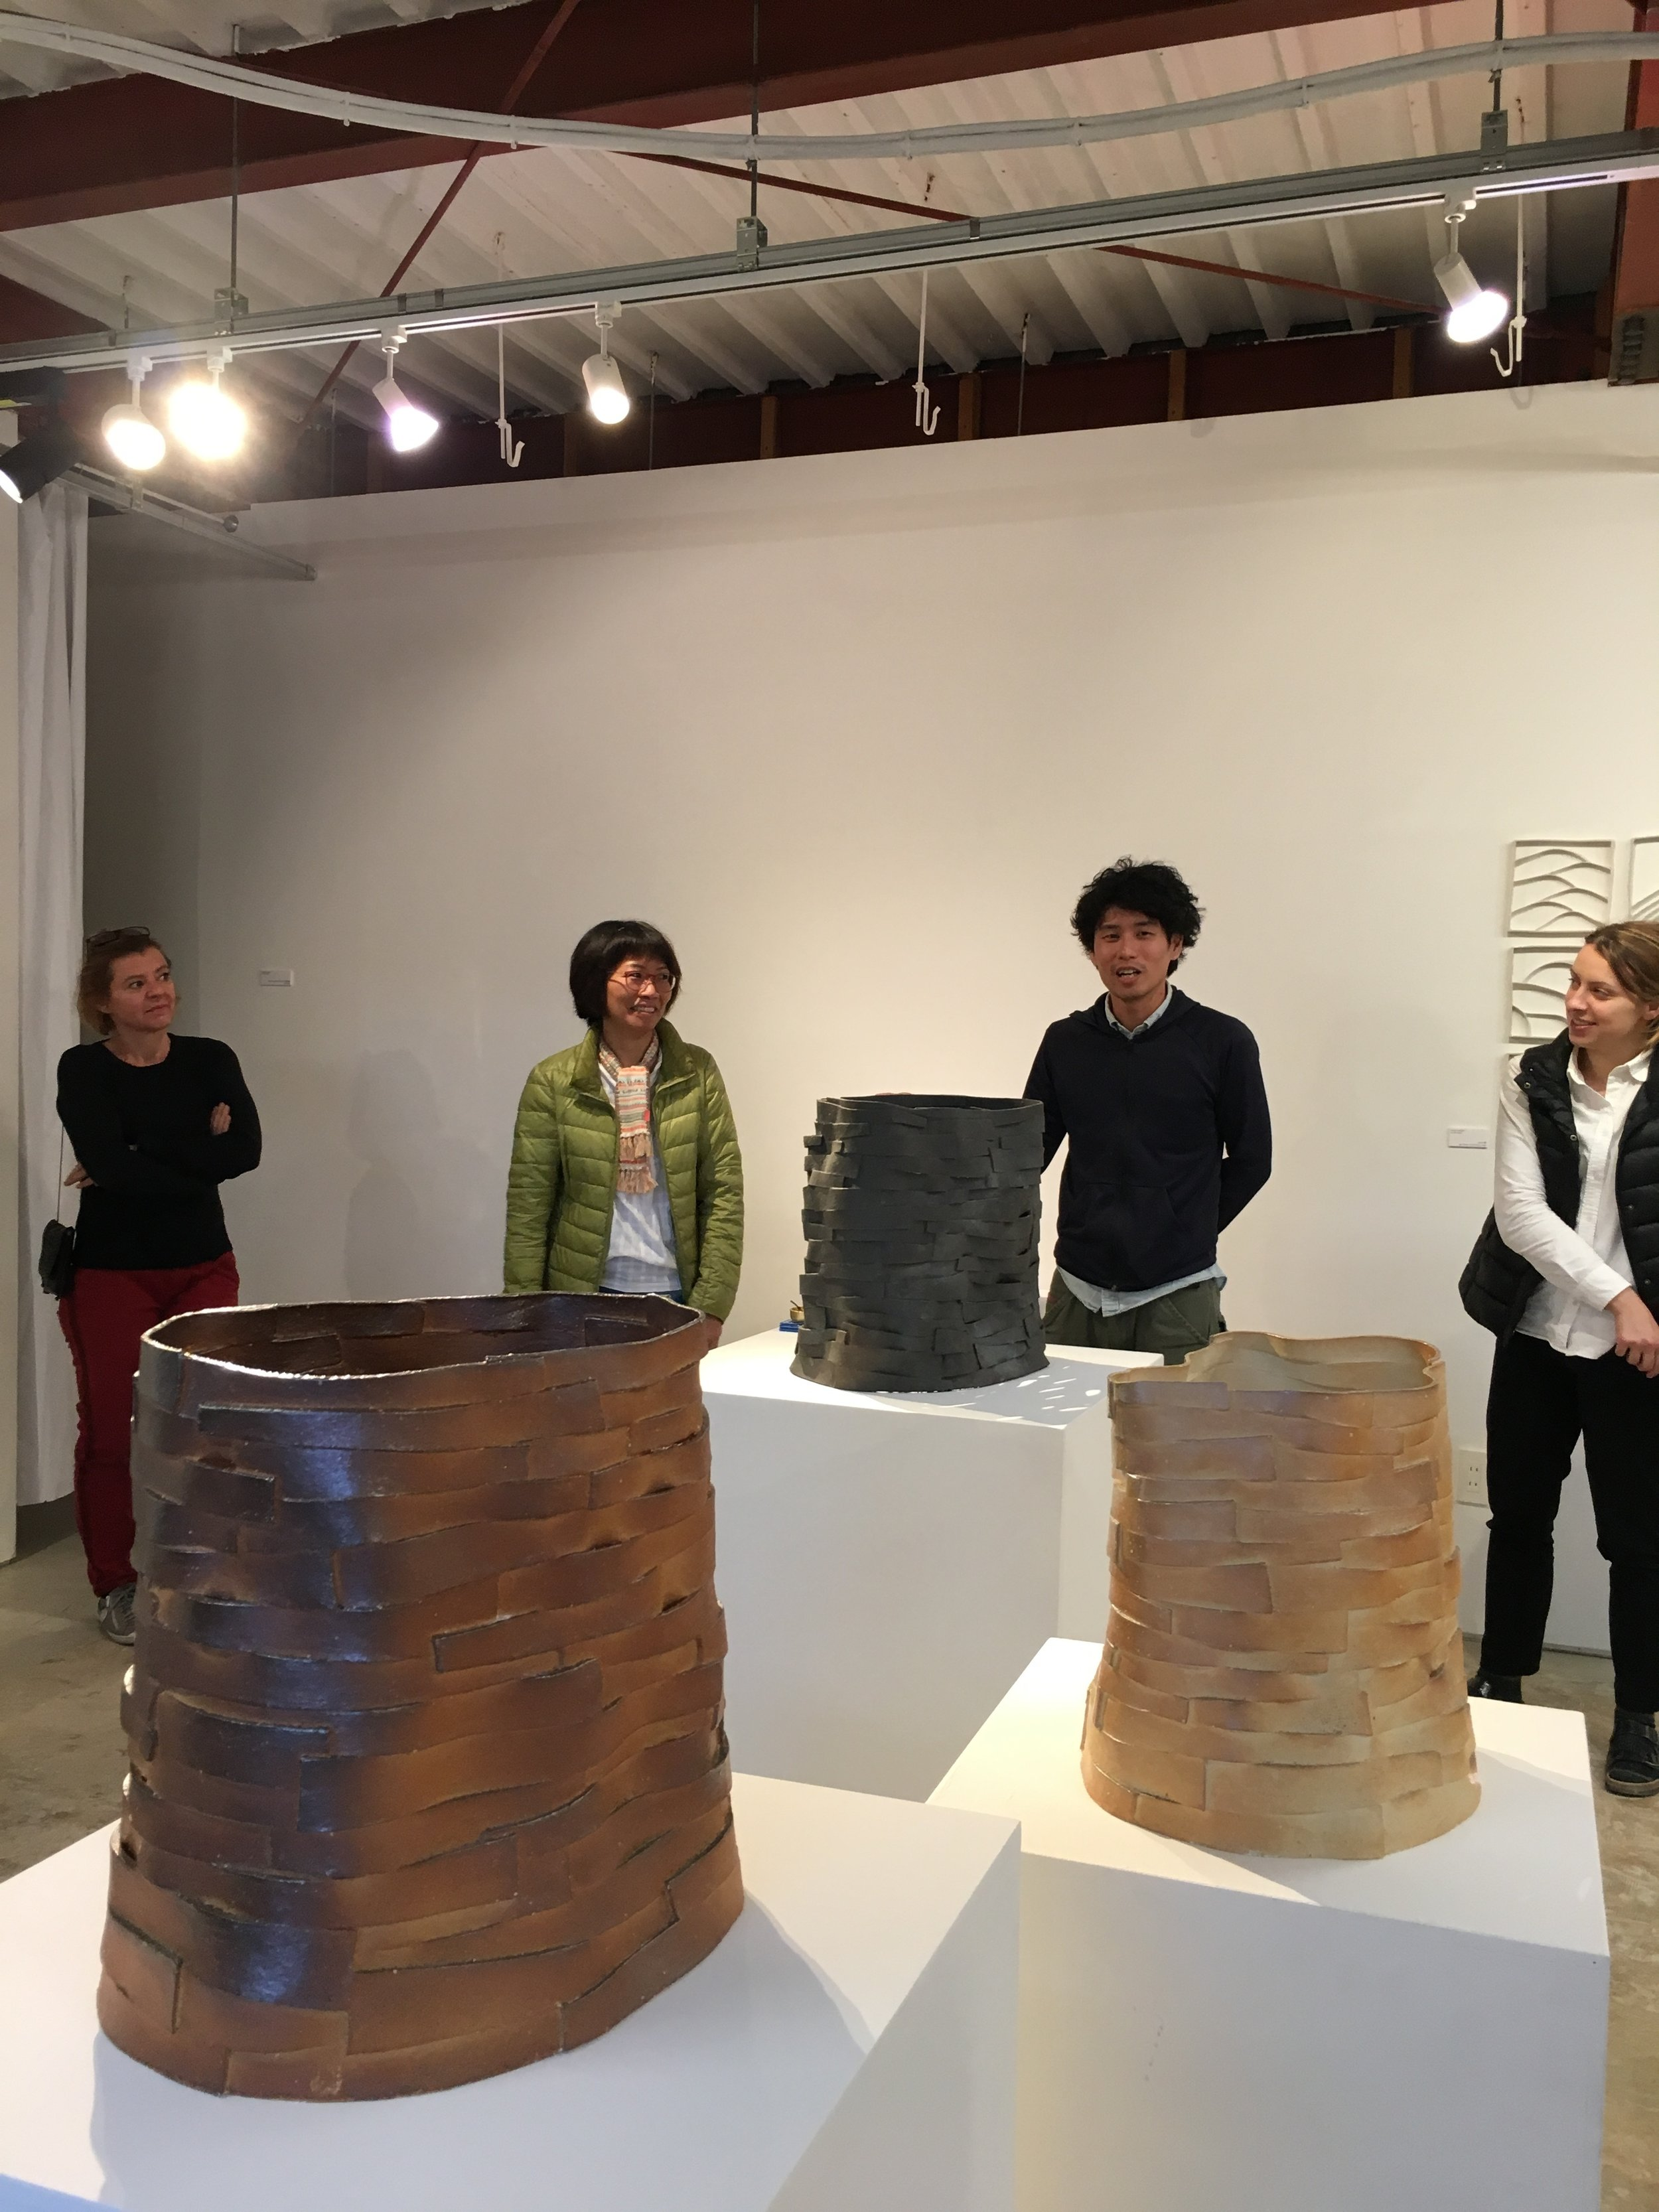 Sita's wood fired pieces in the gallery.